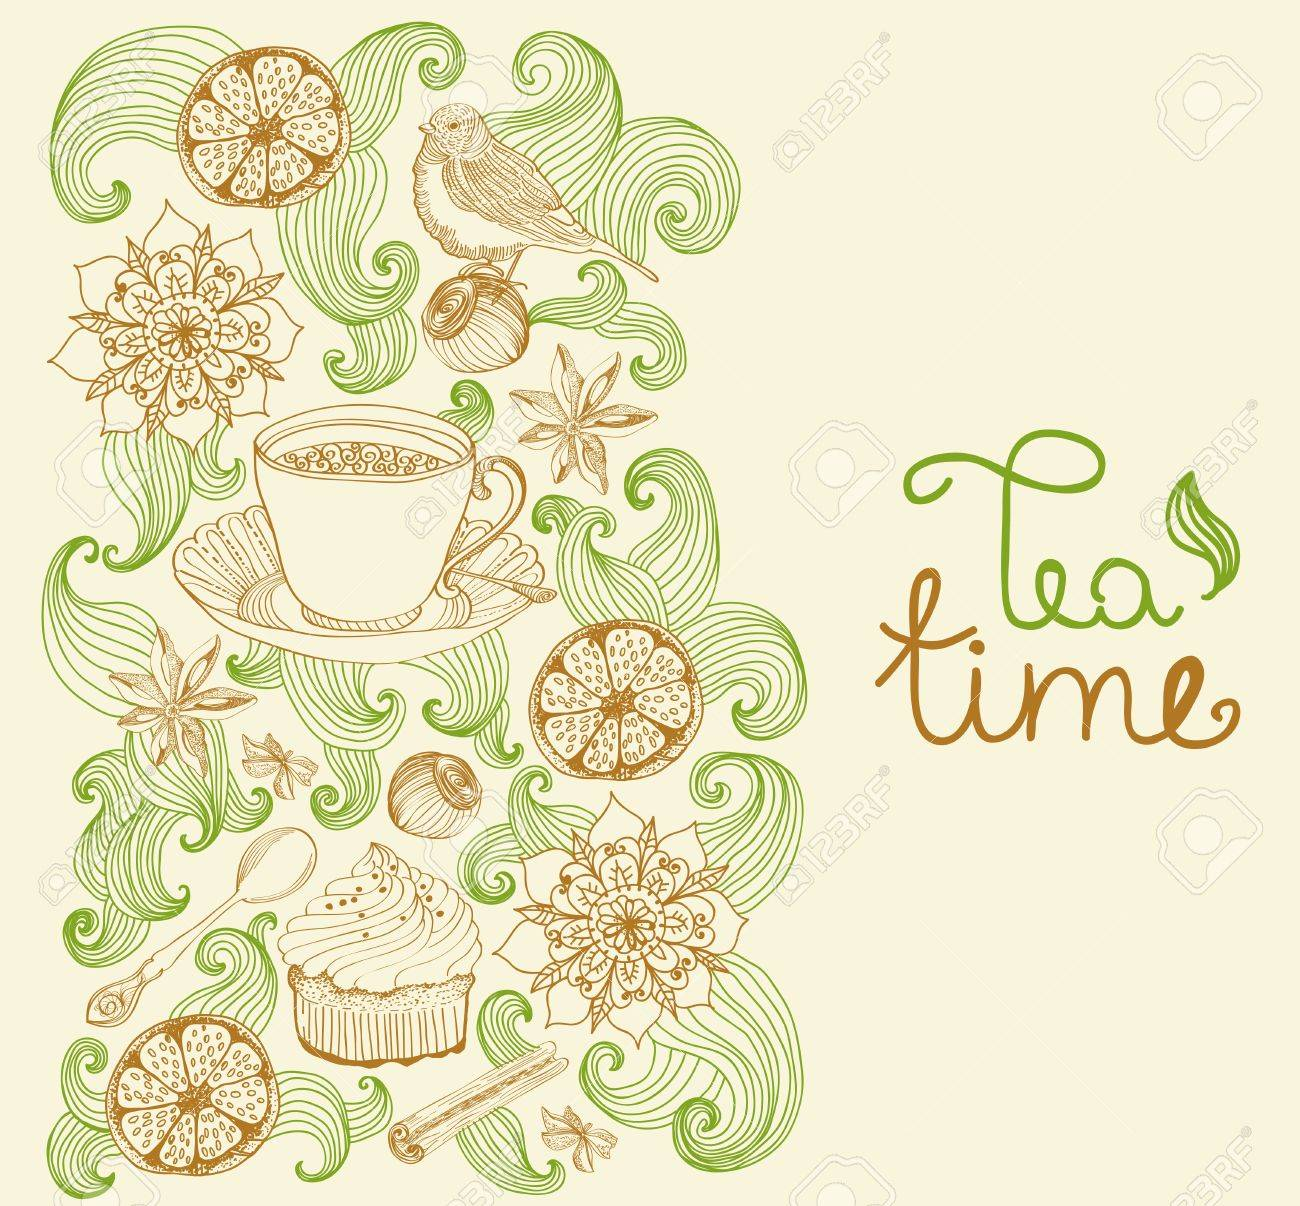 Tea party background royalty free stock photo image 28839215 - Tea Party Background Doodle Background For Tea Time